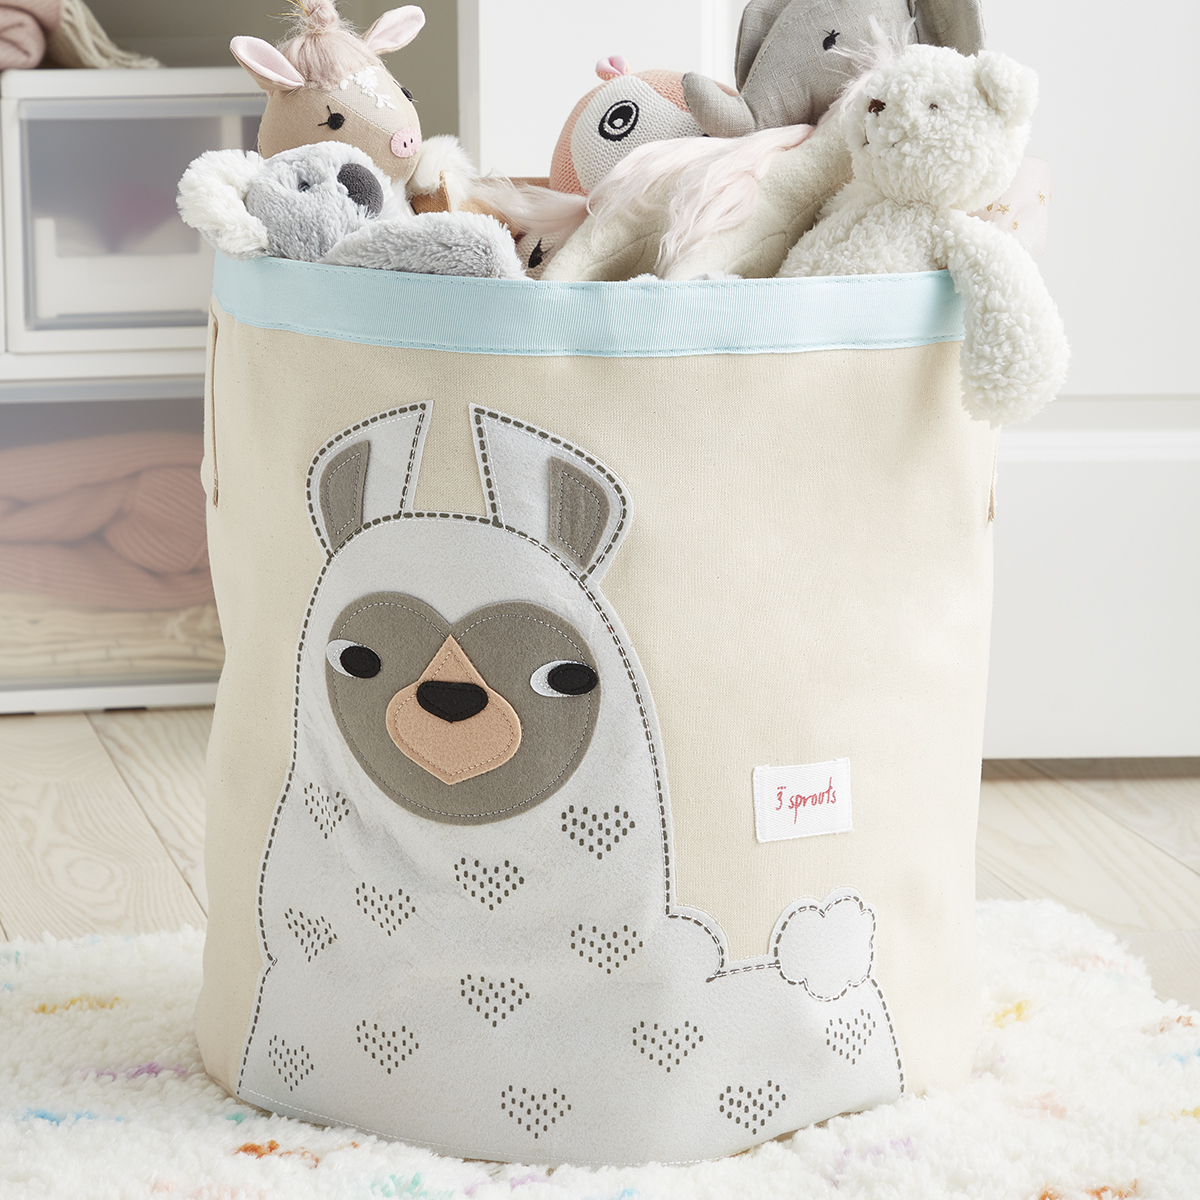 3 Sprouts Llama Canvas Toy Storage Bin